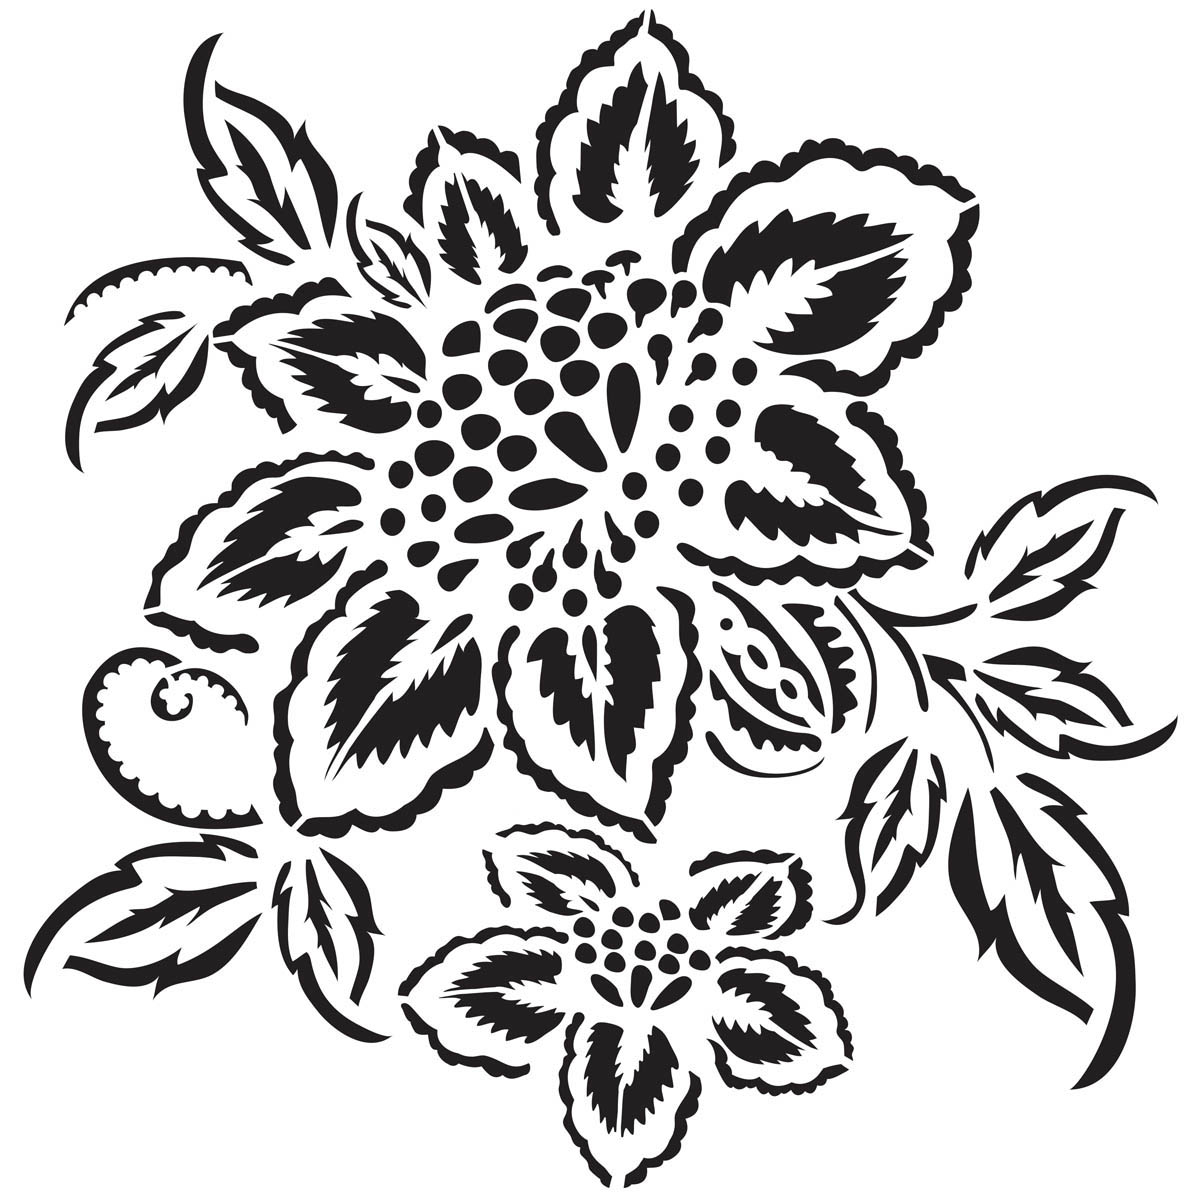 Waverly ® Inspirations Laser Stencils - Décor - Floral, 12